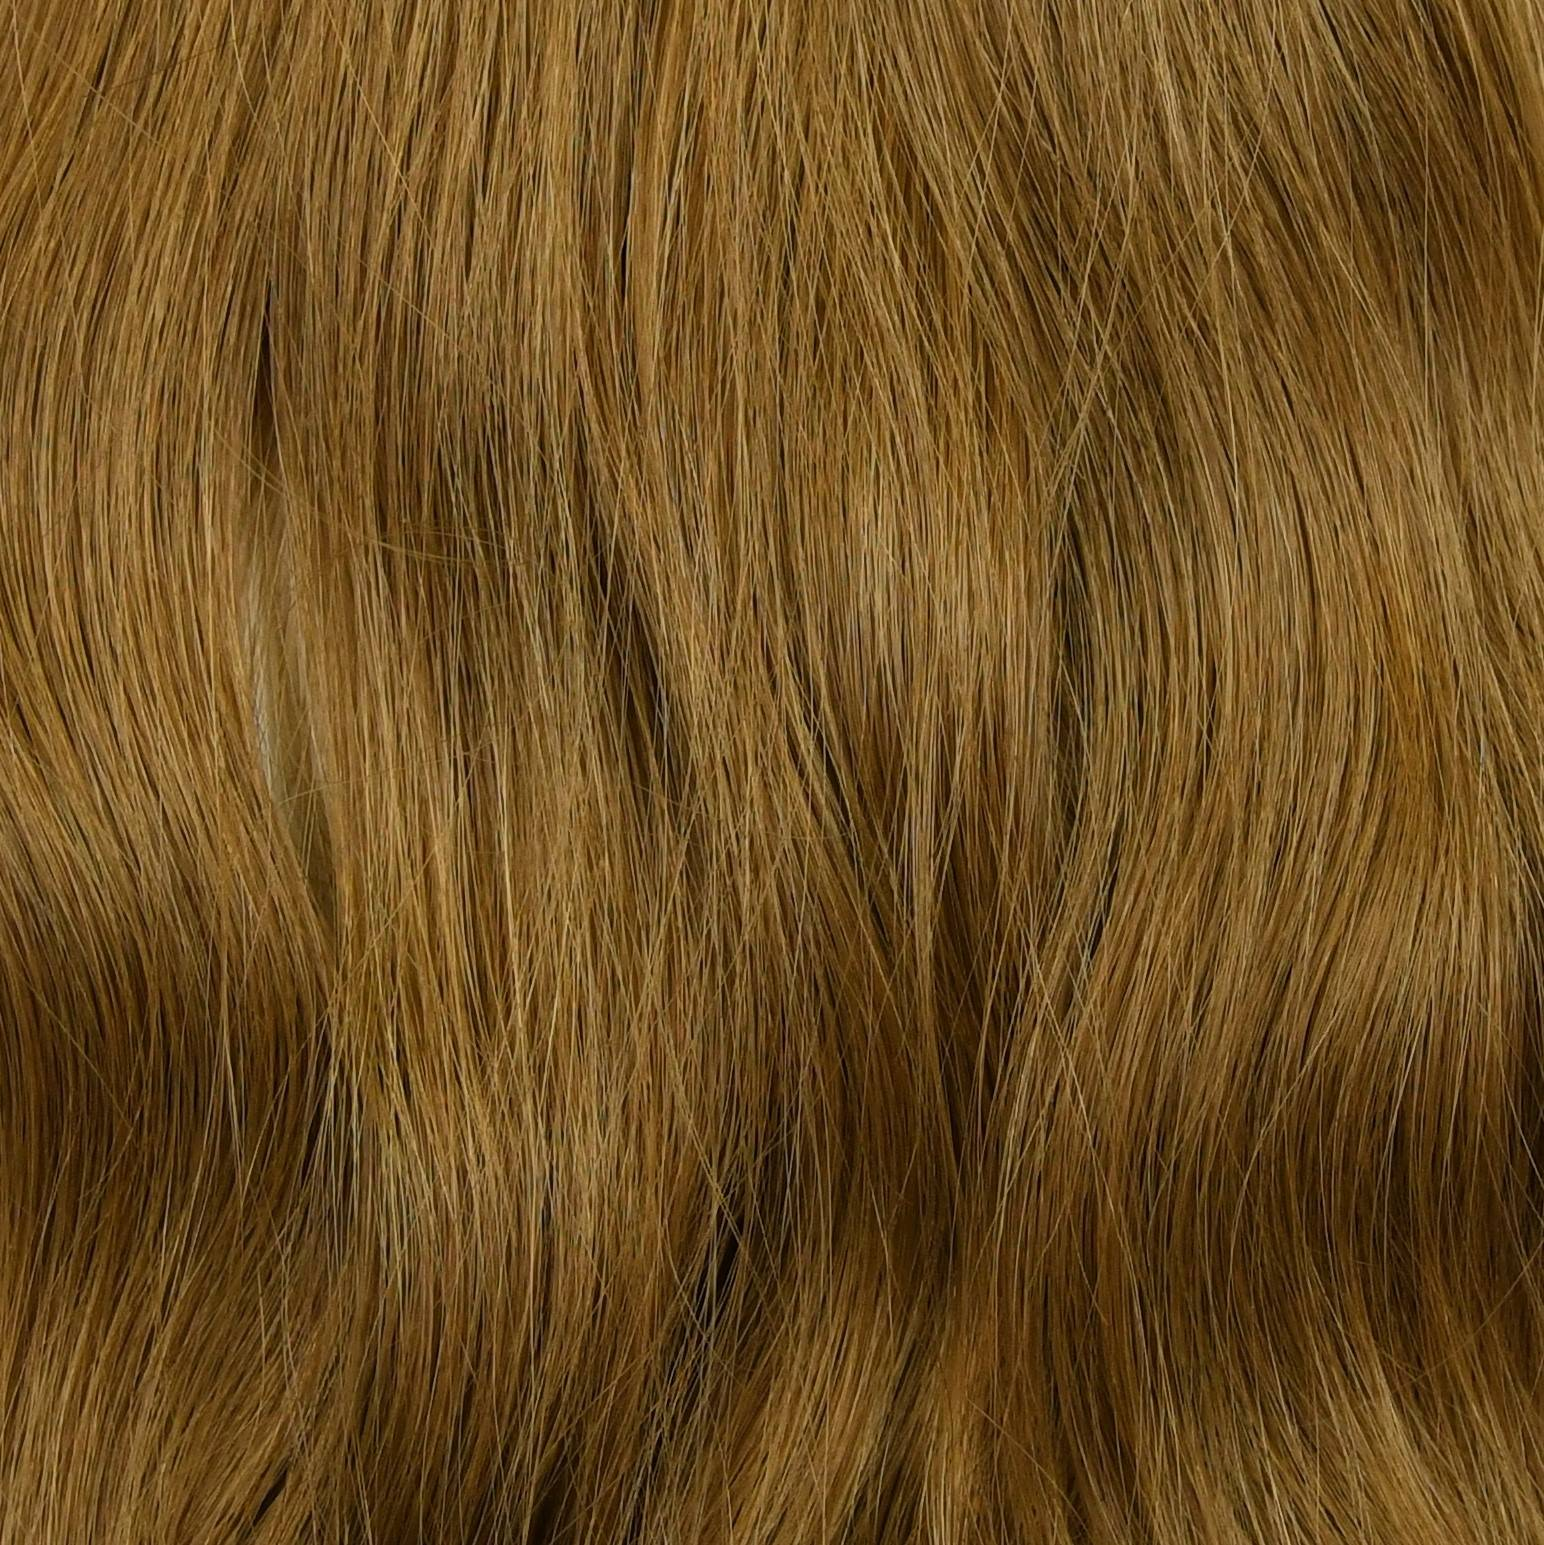 golden color hair extensions sample in hair color chart